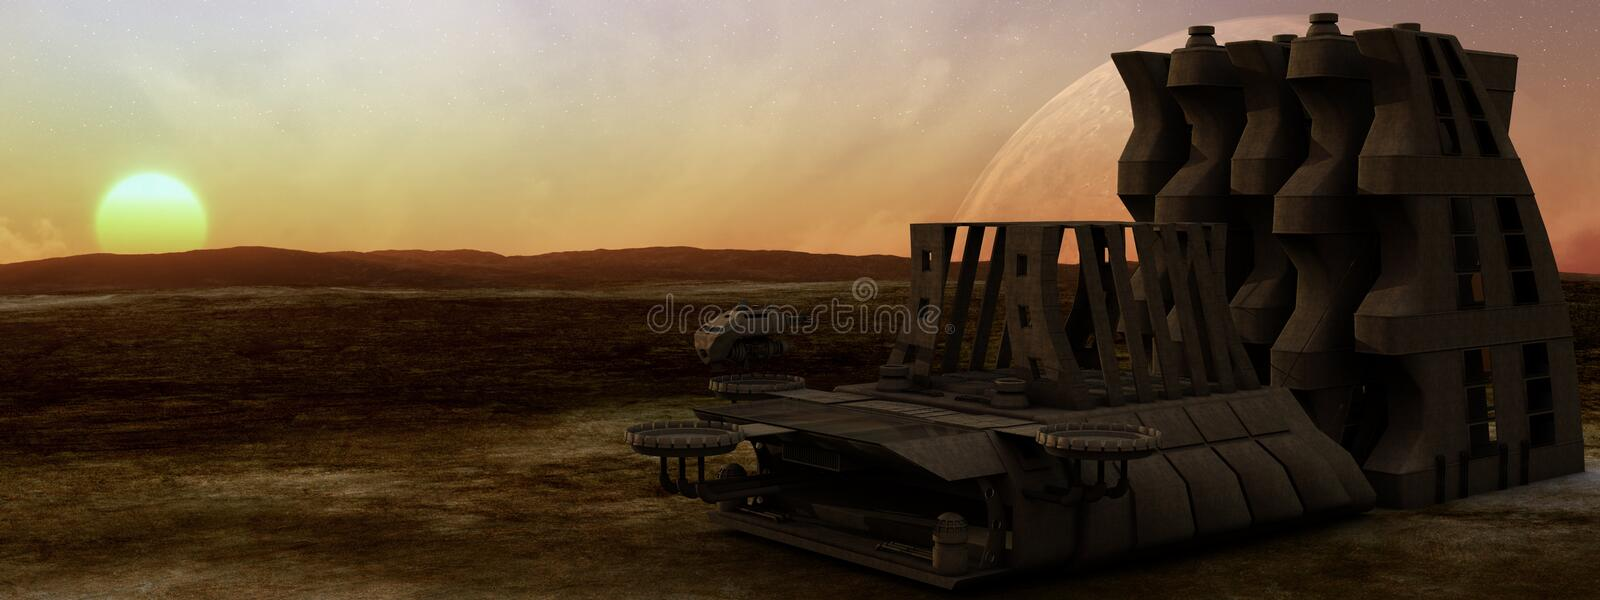 Desert Planet Space Station royalty free stock images